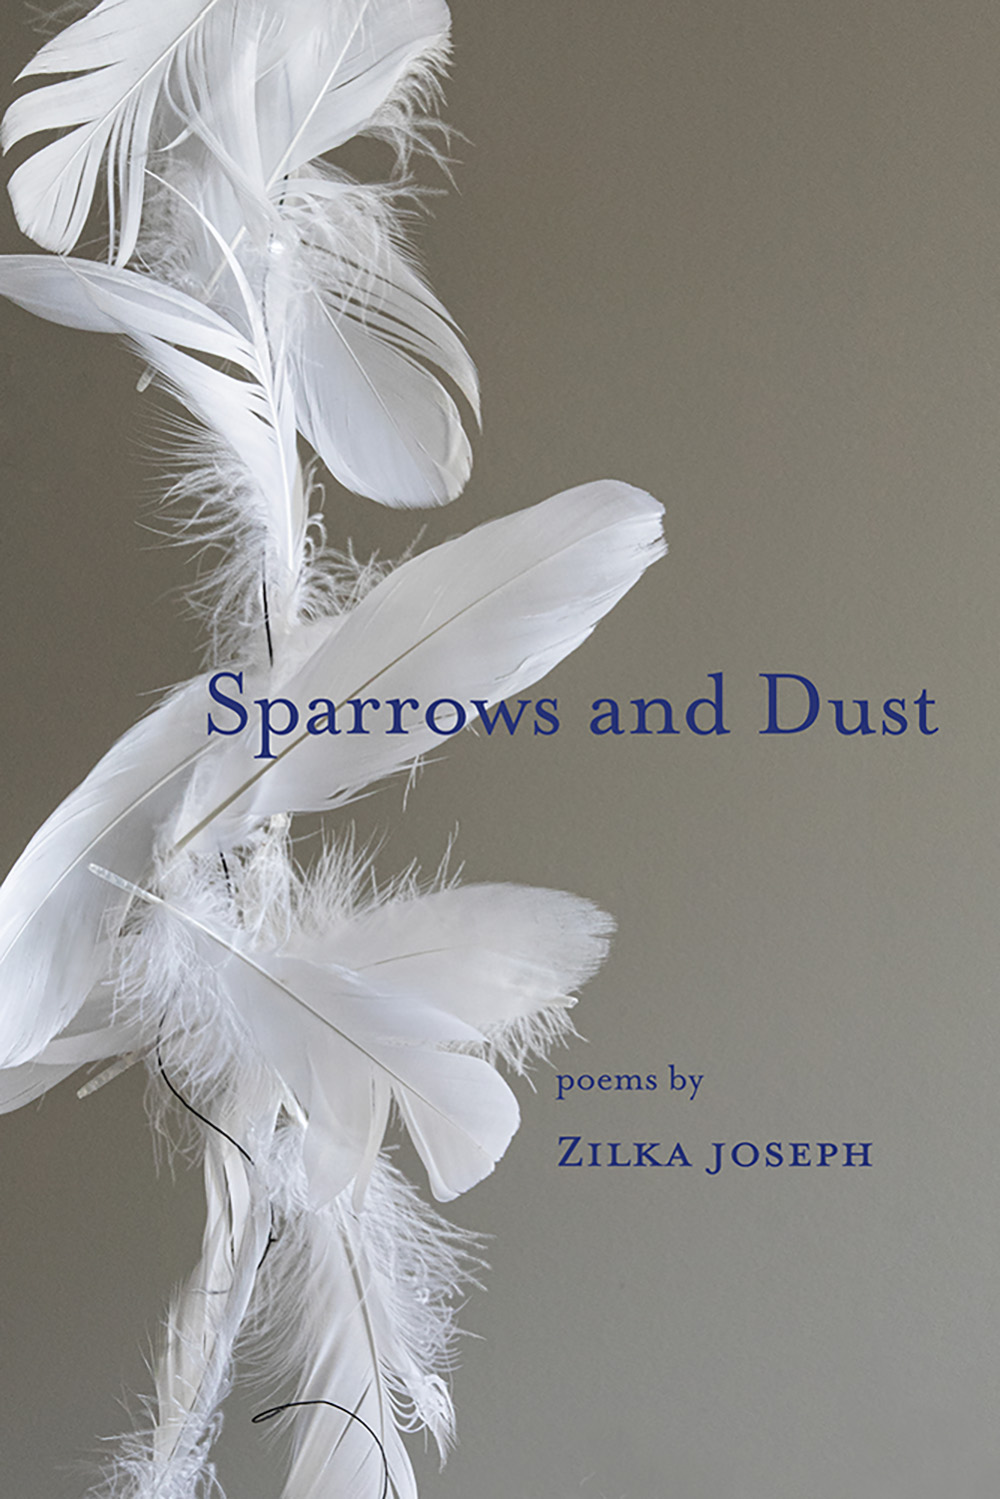 Sparrows and Dust